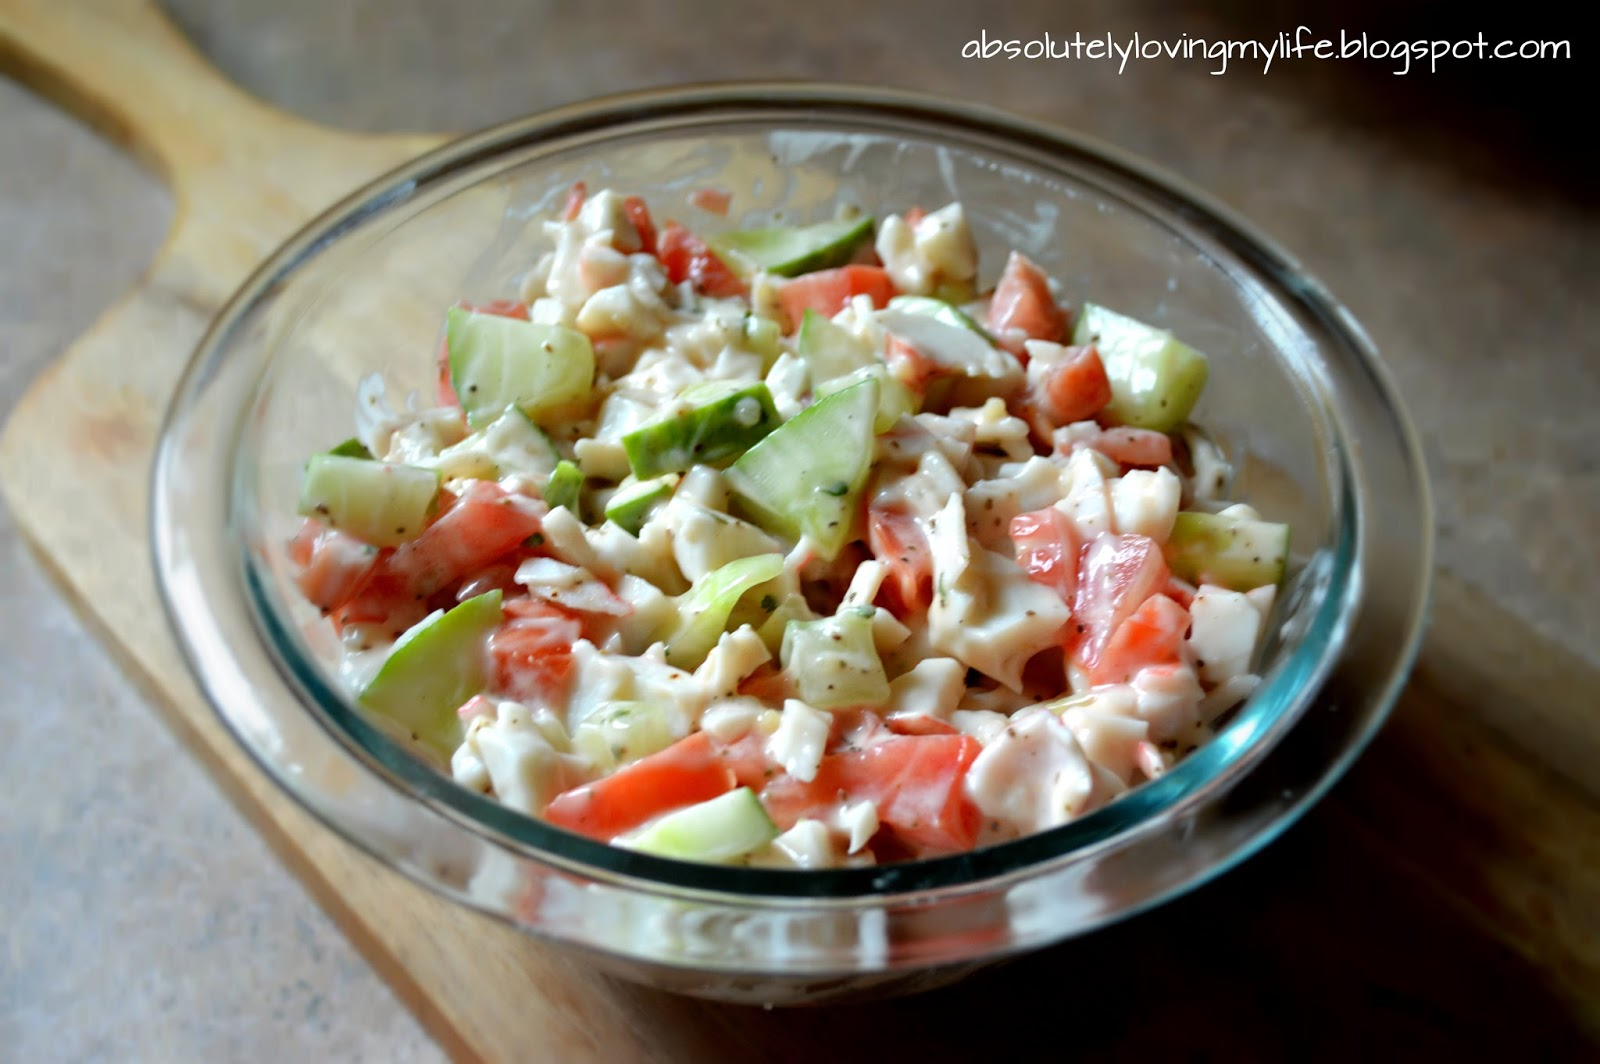 Years ago, I made my own version of a crab salad, using imitation crab ...